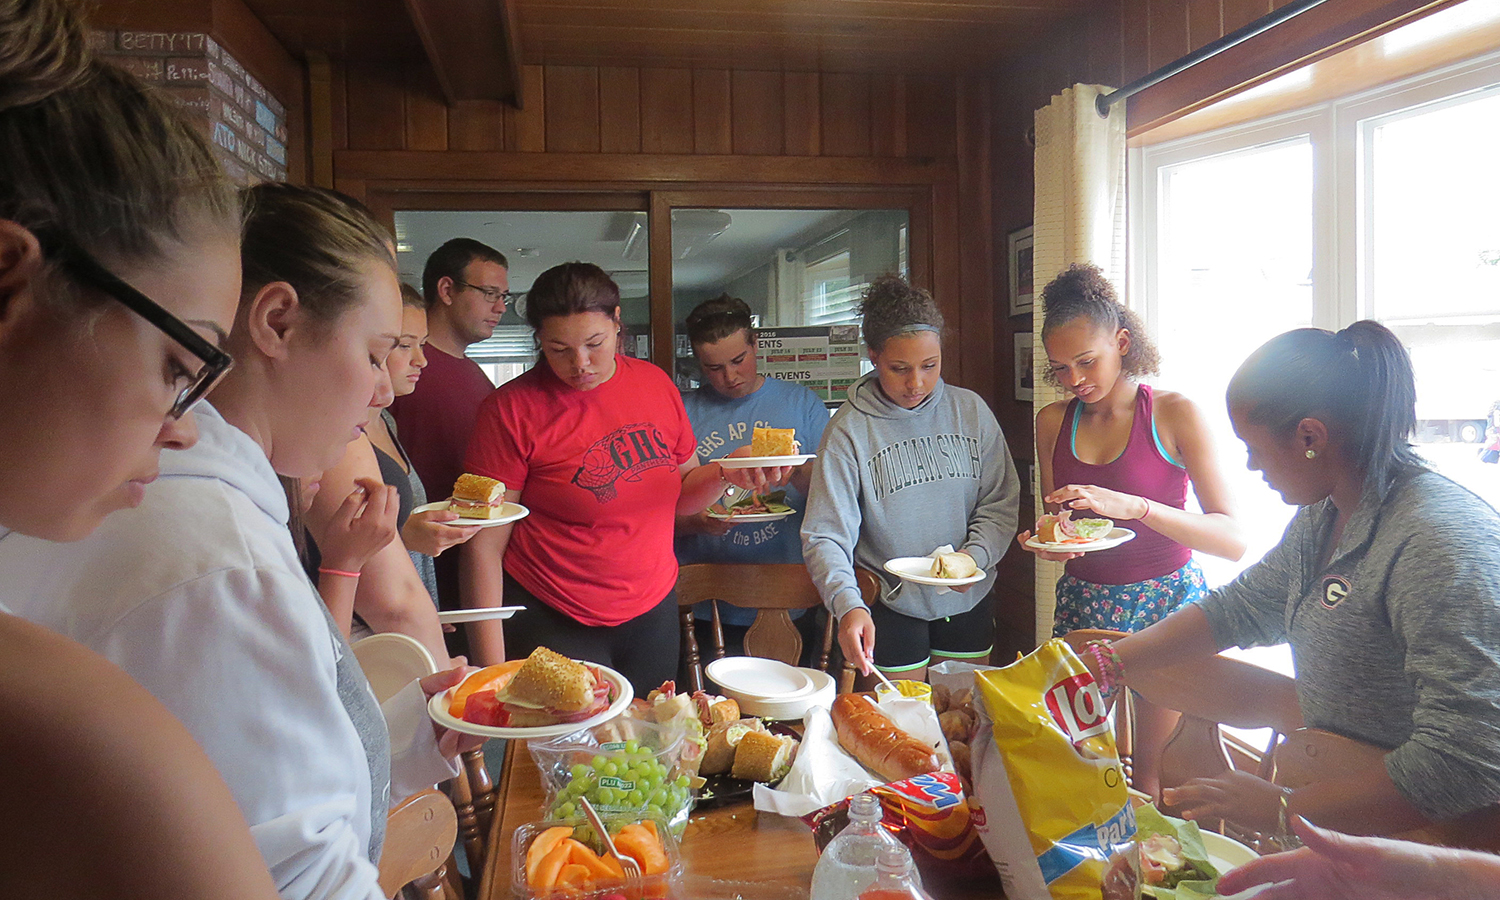 The Intercultural Affairs house hosts a number of events, both during the semester and in the summertime, dedicated to supporting students and to connecting them with cross-cultural opportunities.